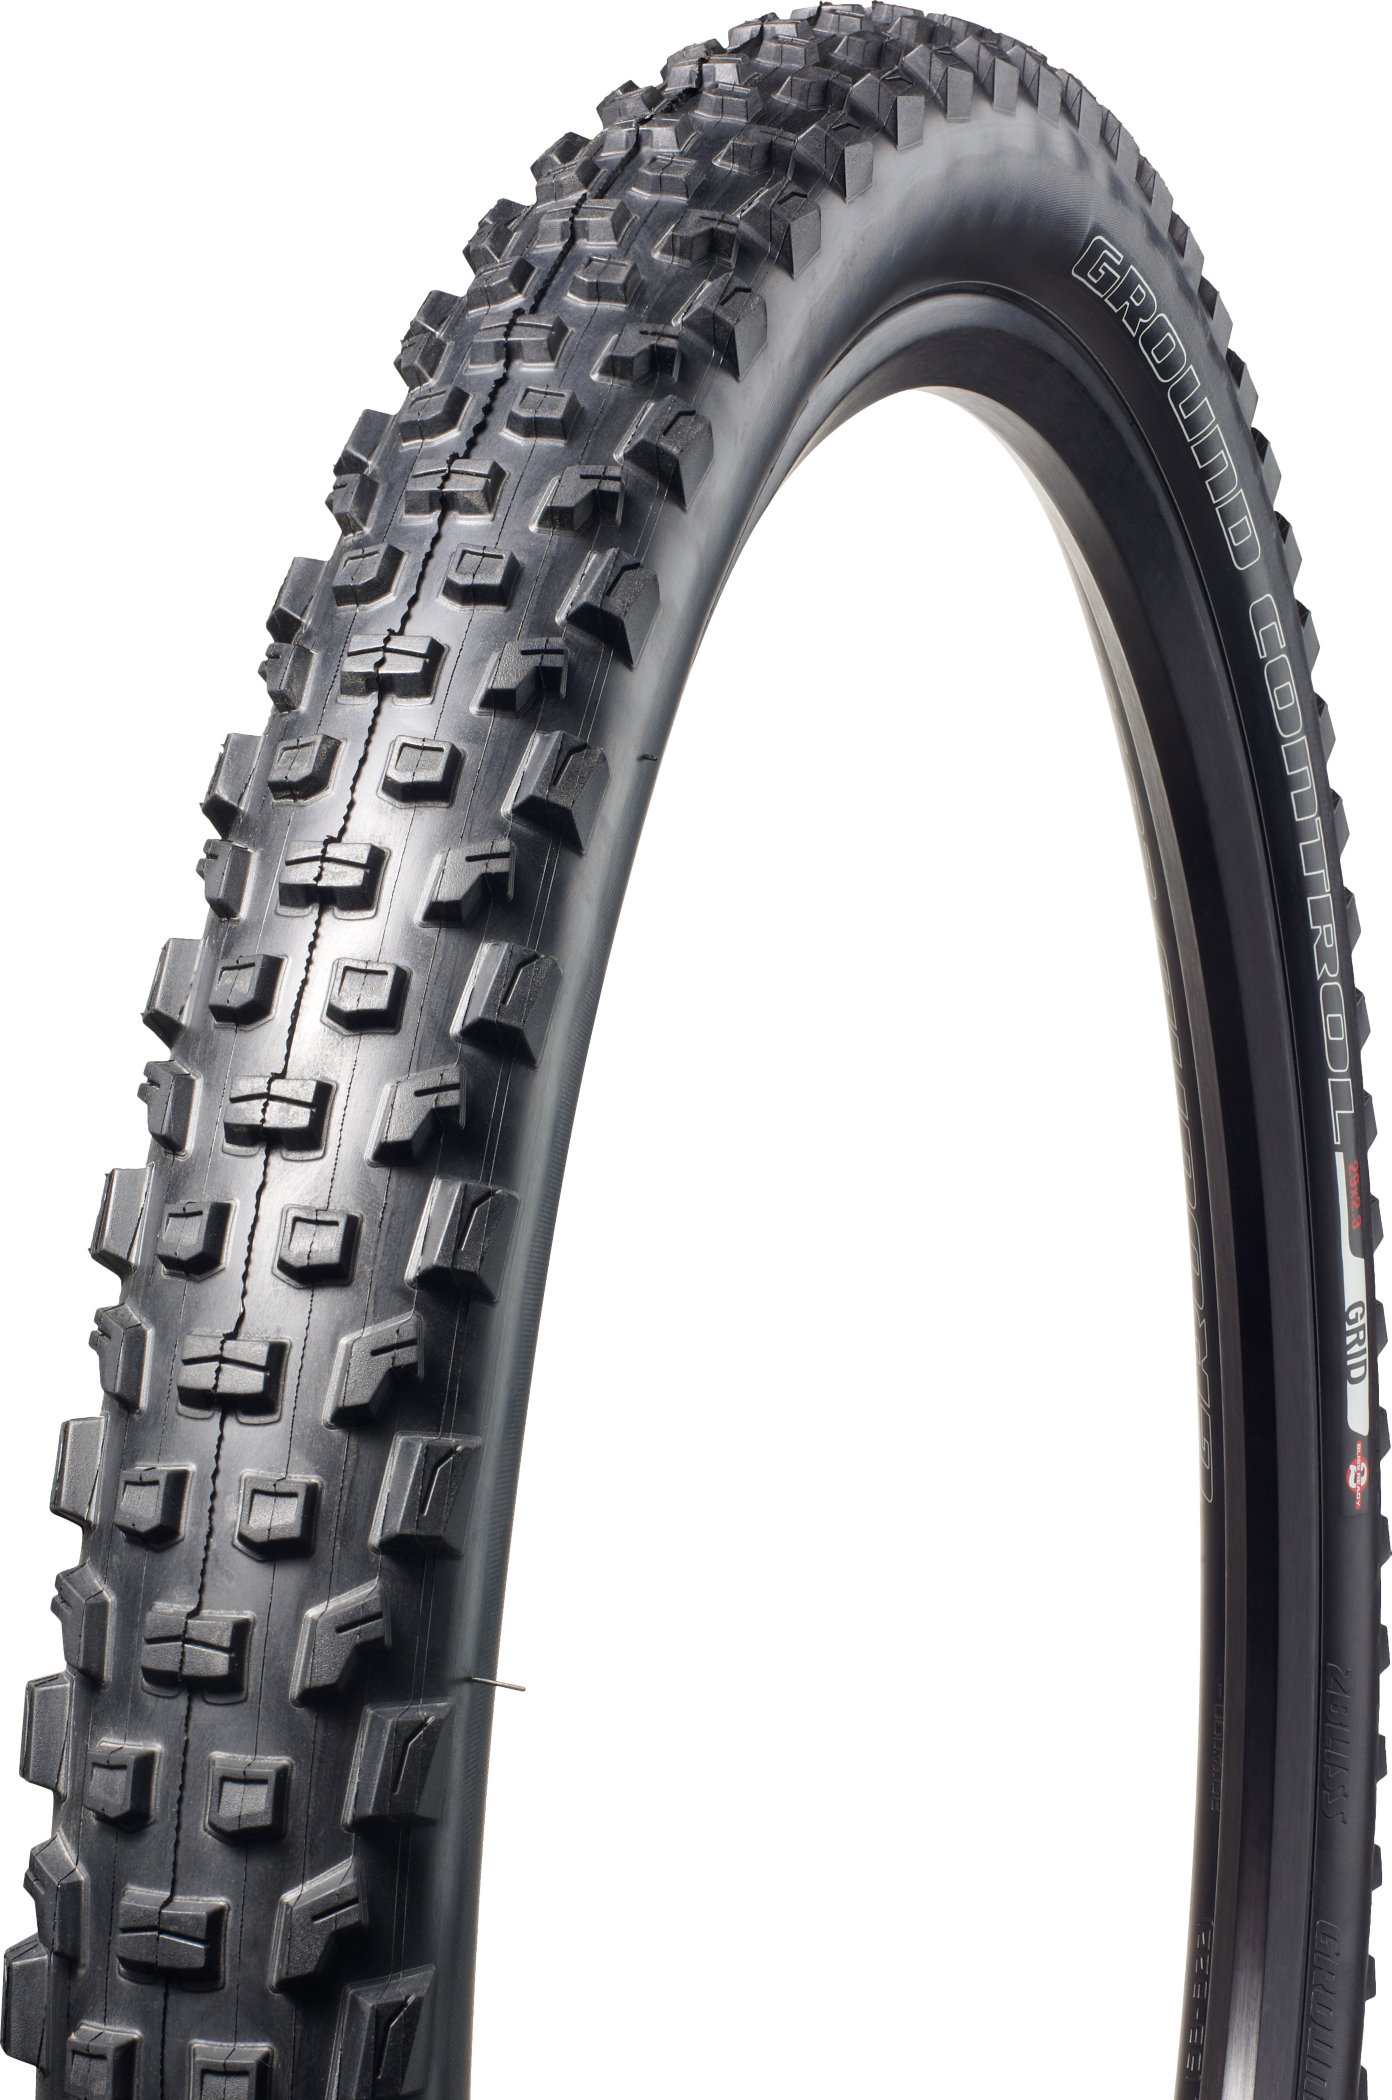 SPECIALIZED GROUND CONTROL SPORT TIRE 650BX2.3 - SPECIALIZED GROUND CONTROL SPORT TIRE 650BX2.3